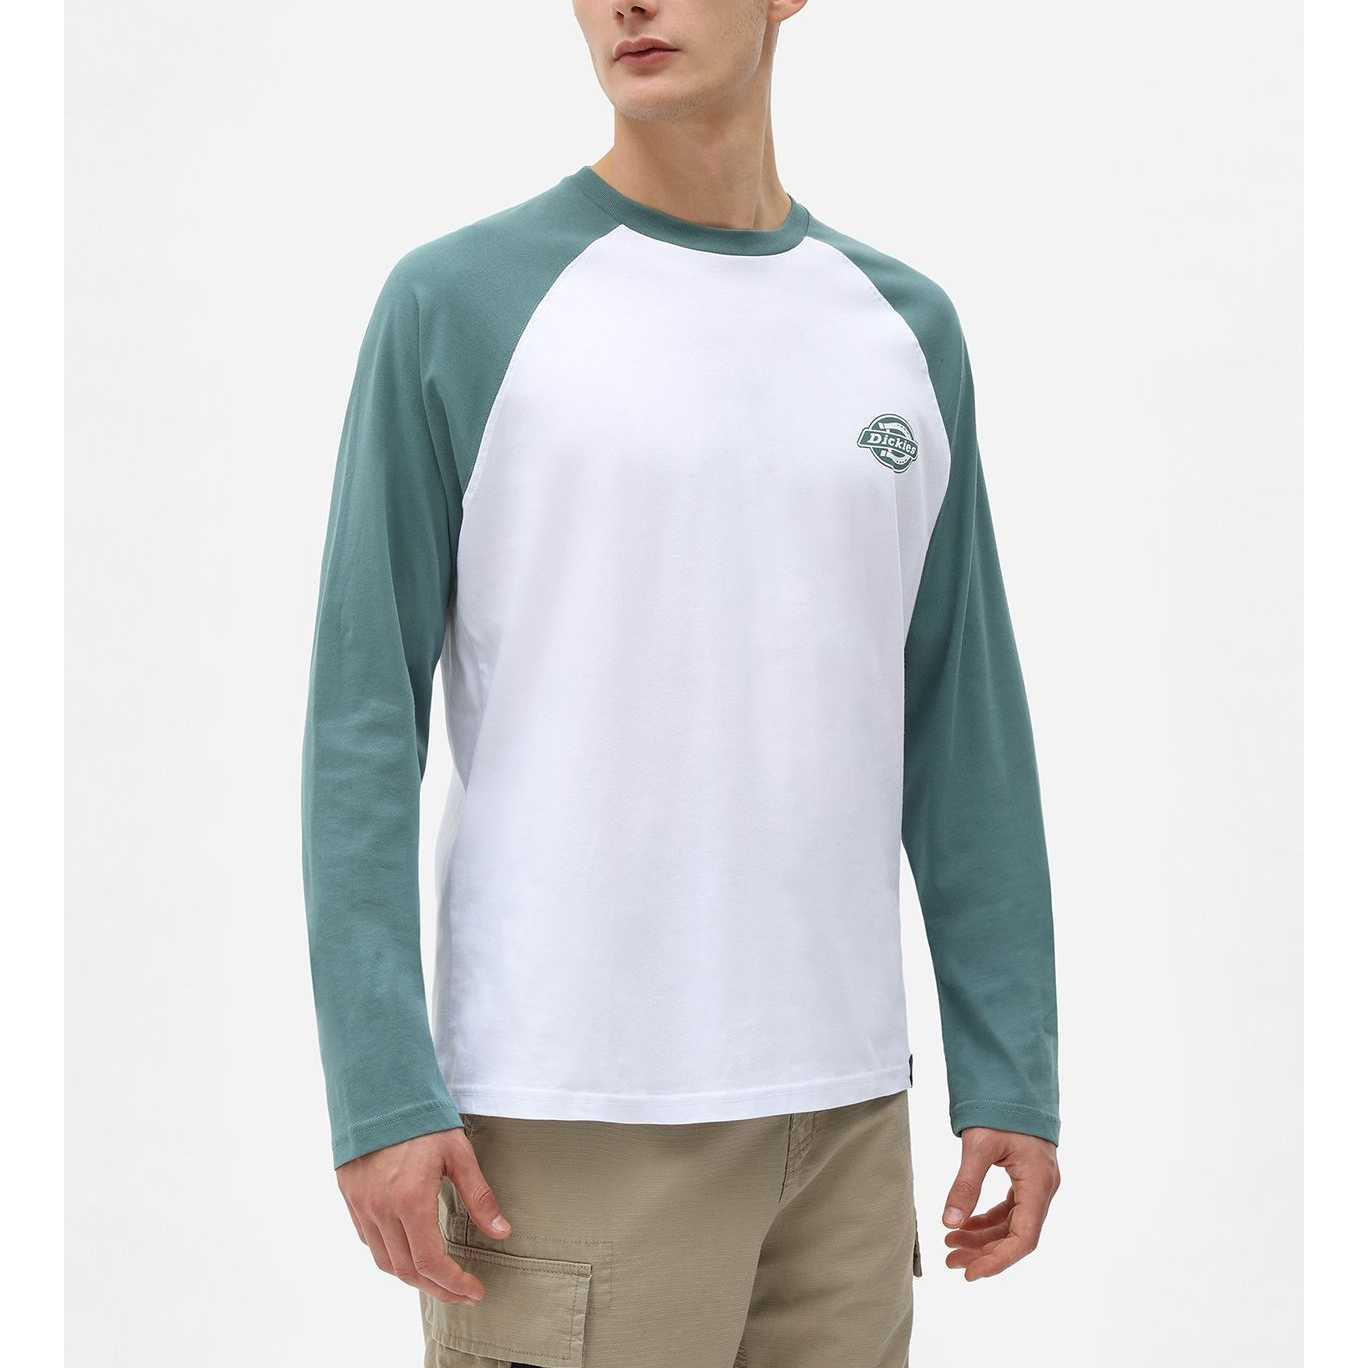 CAMISETA DICKIES COLOGNE LINCOLN GREEN